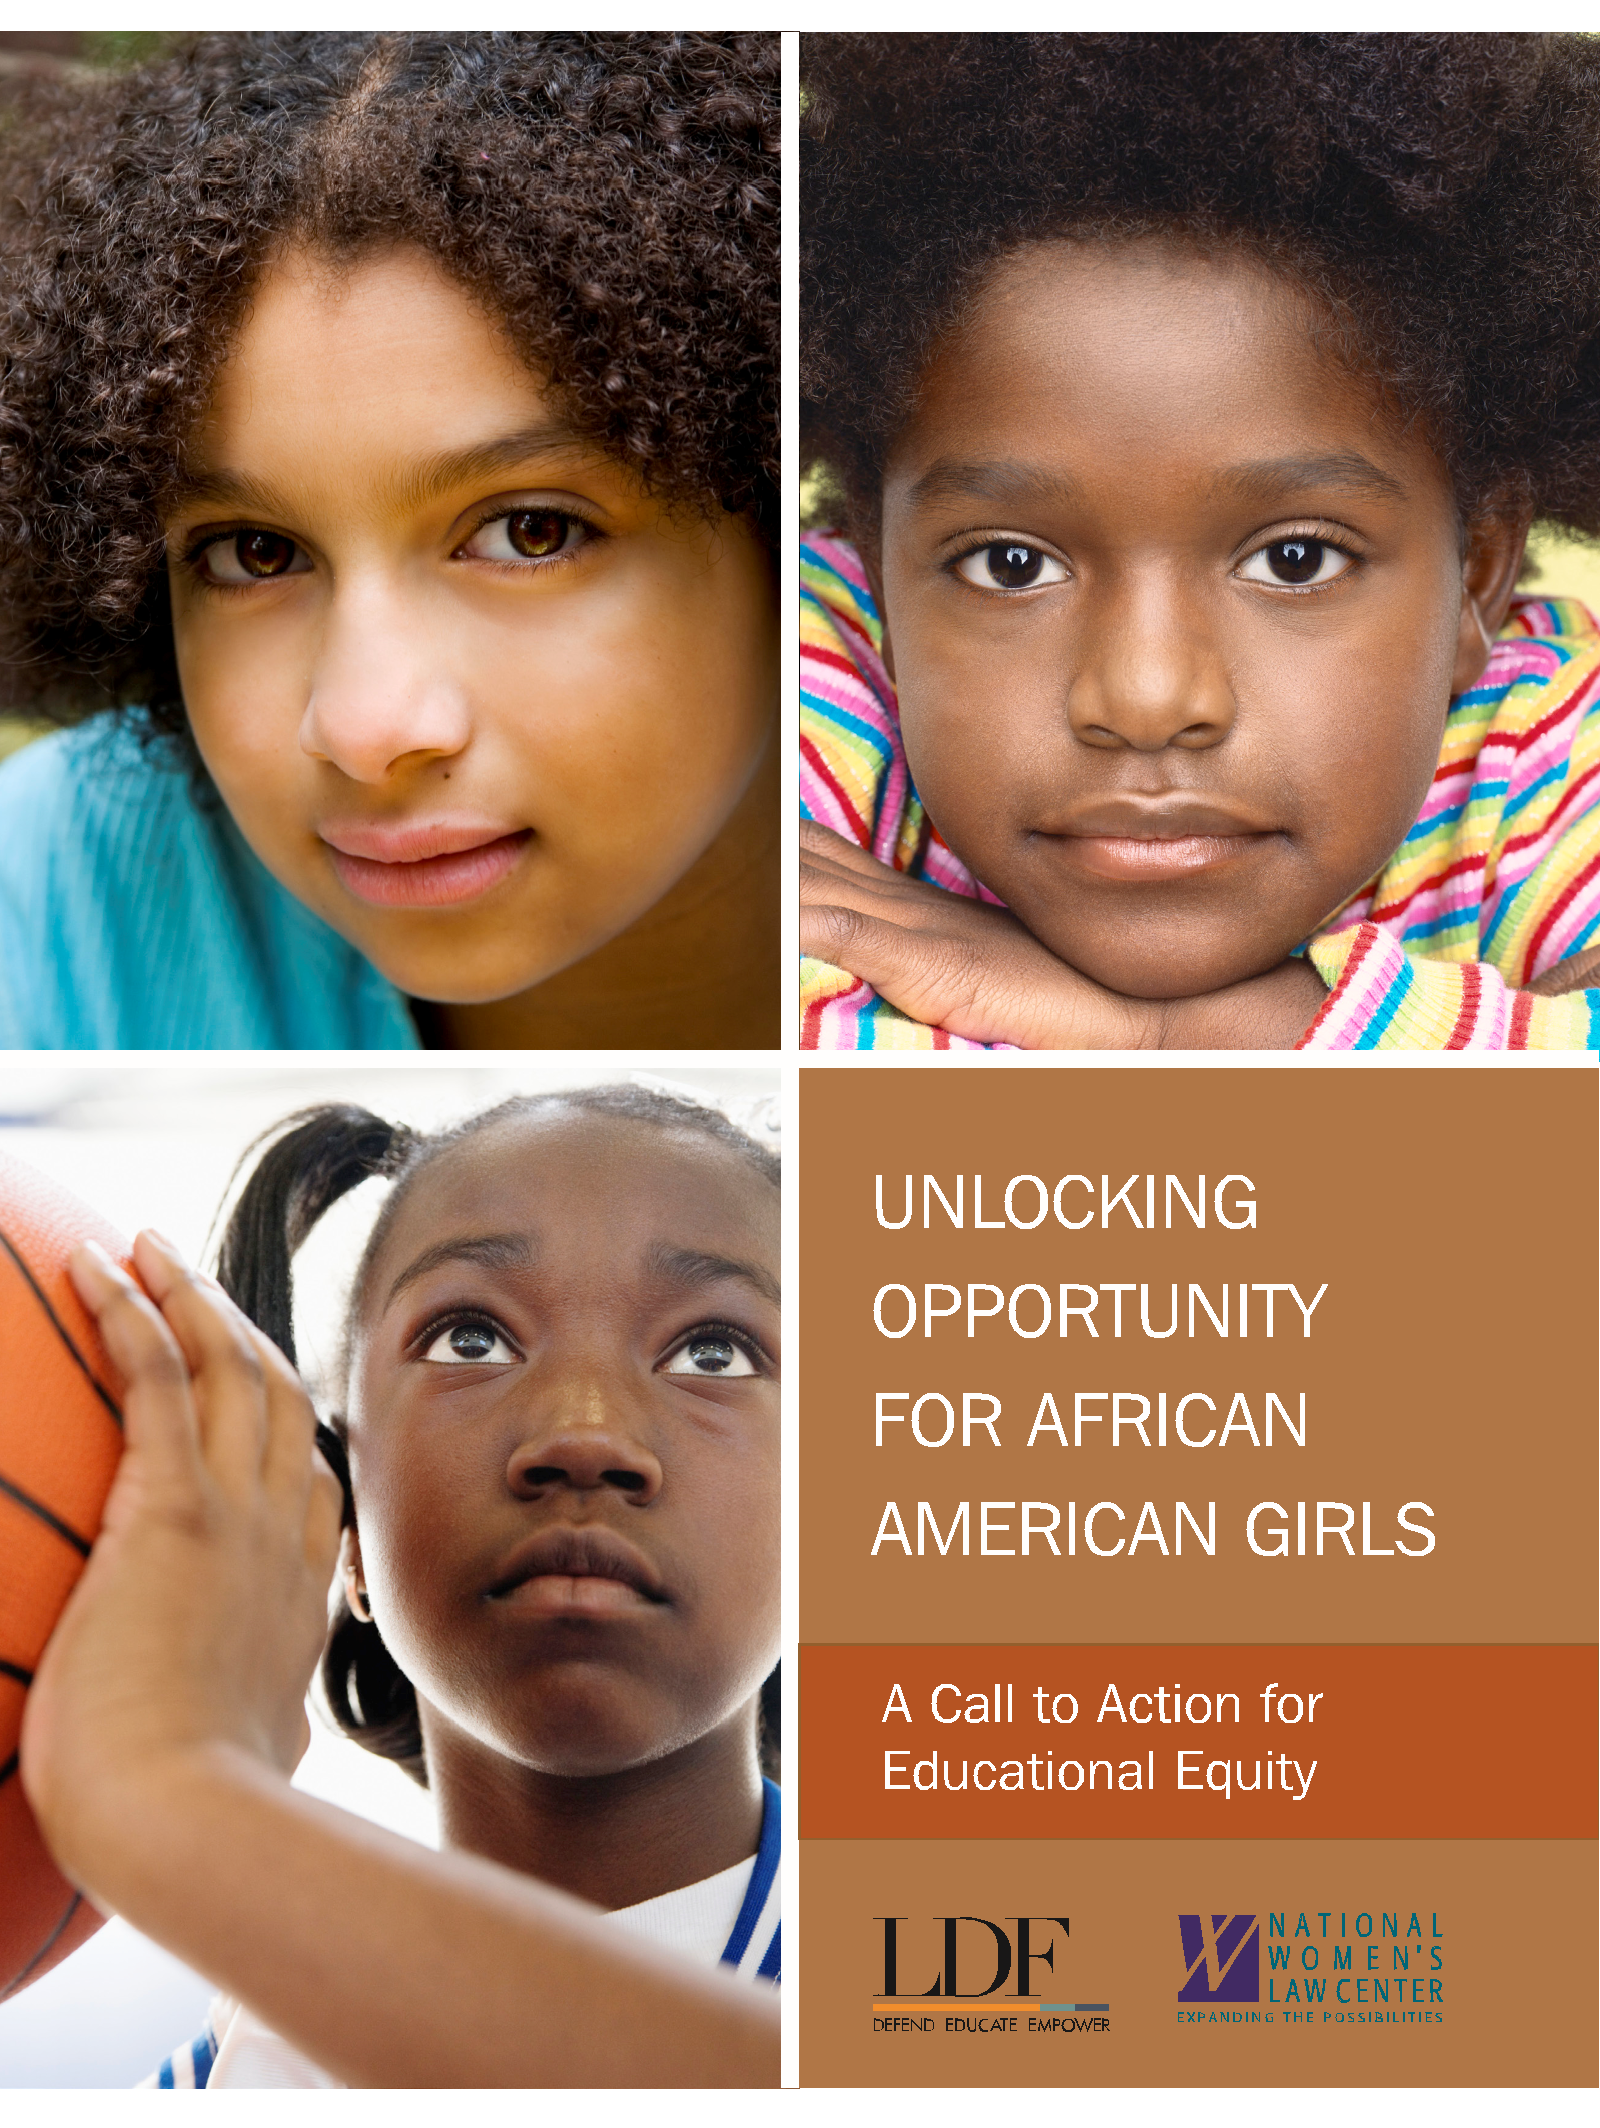 Unlocking Opportunities for AA Girls